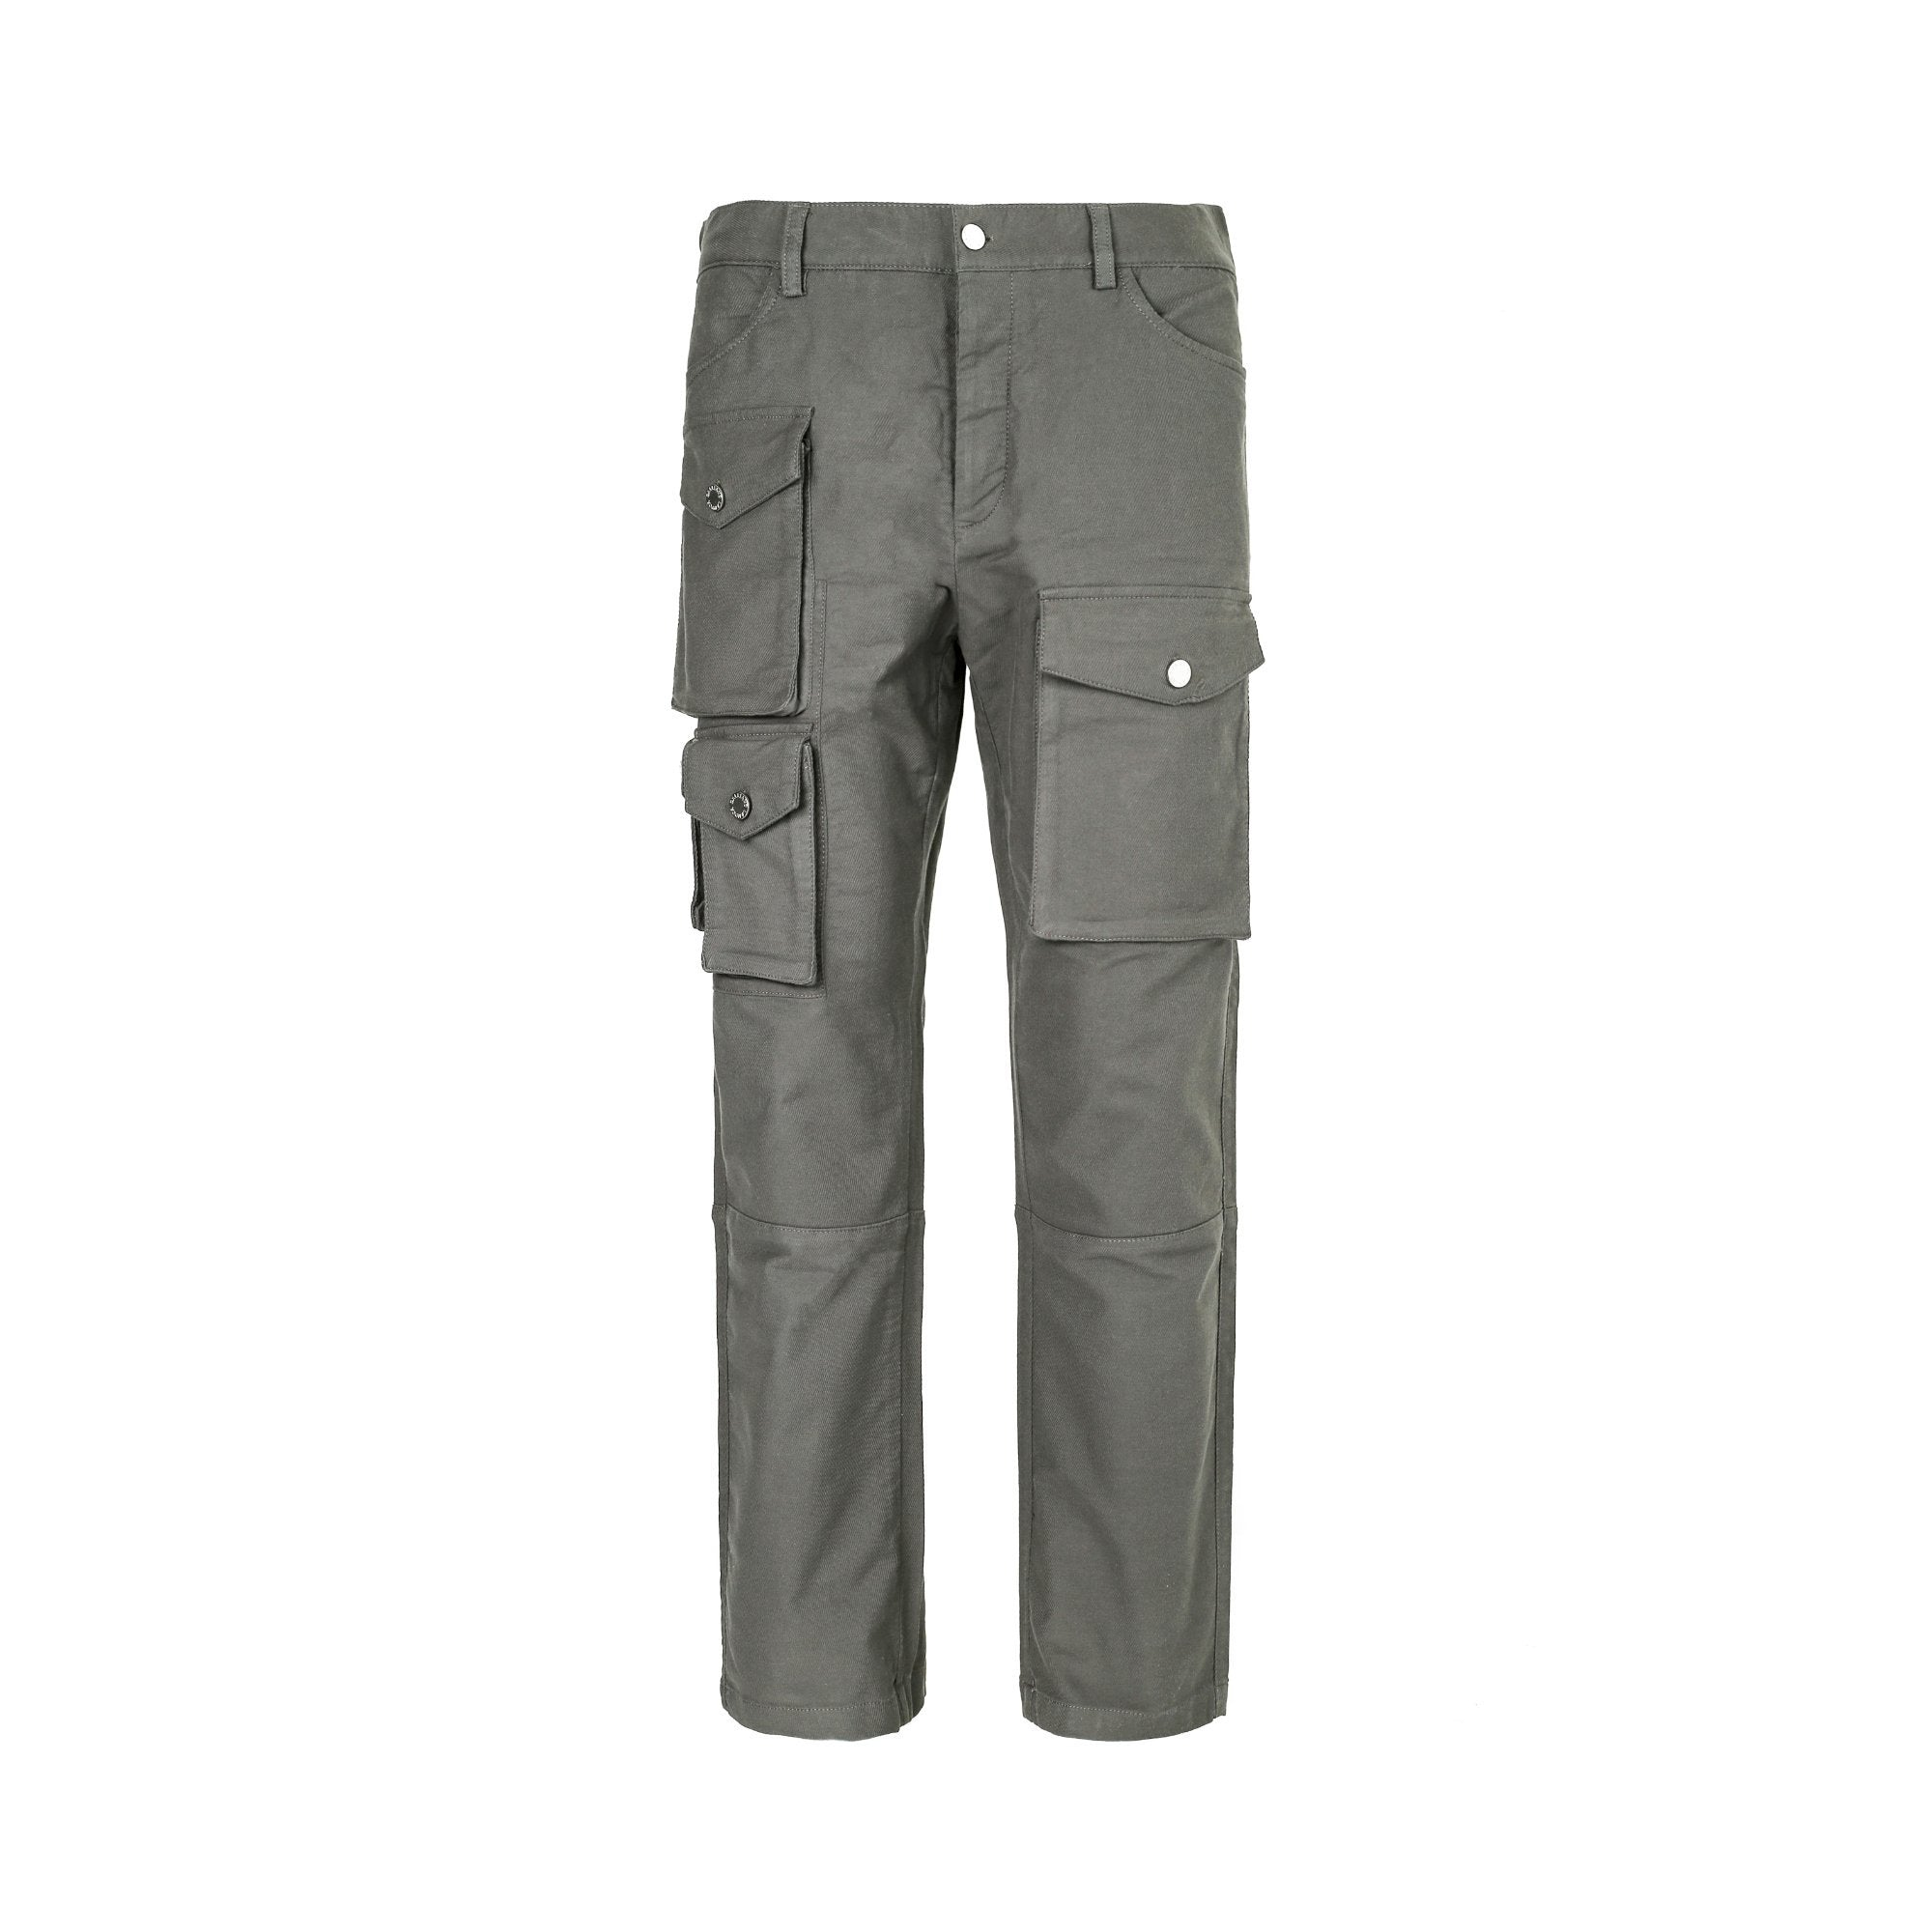 GALLIANO LANDOR Cotton-Blend Twill Cargo Pants | MADA IN CHINA